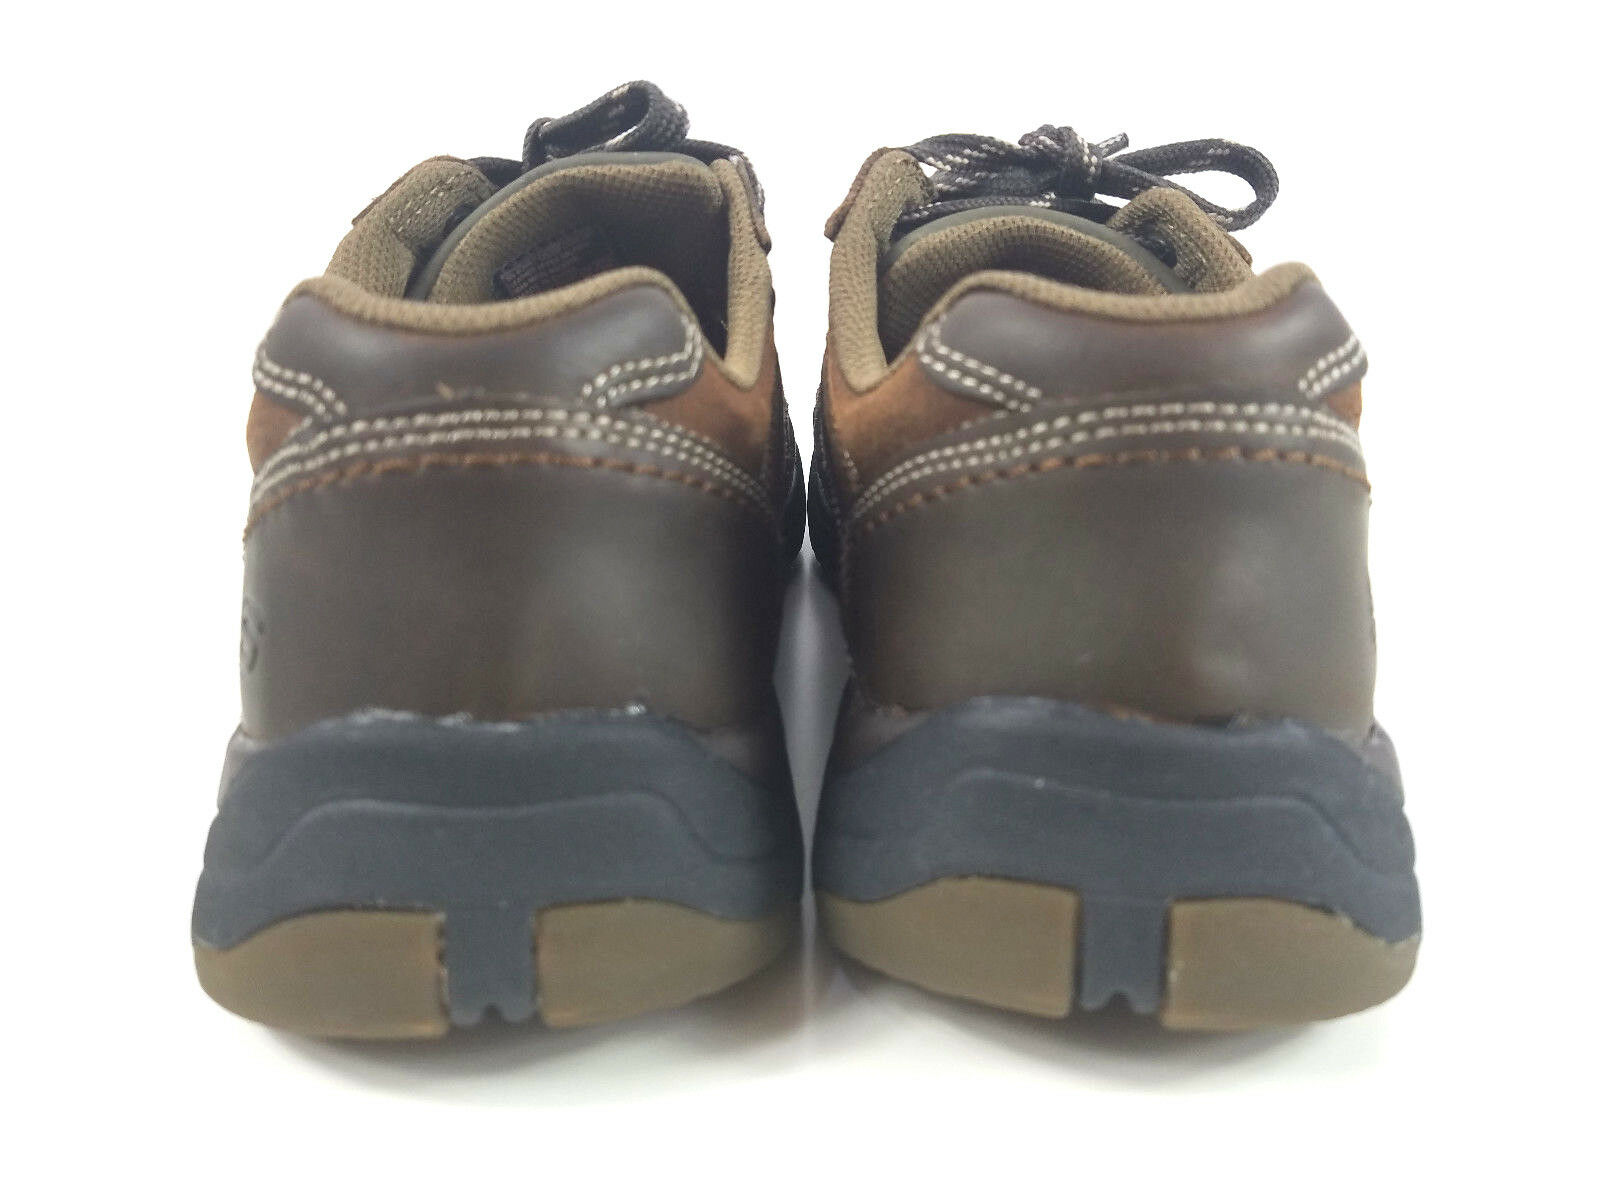 Skechers Relaxed Fit Shoes Size Mens Size Shoes 8 Memory Foam Walking Hiking Leather 63967 77d697